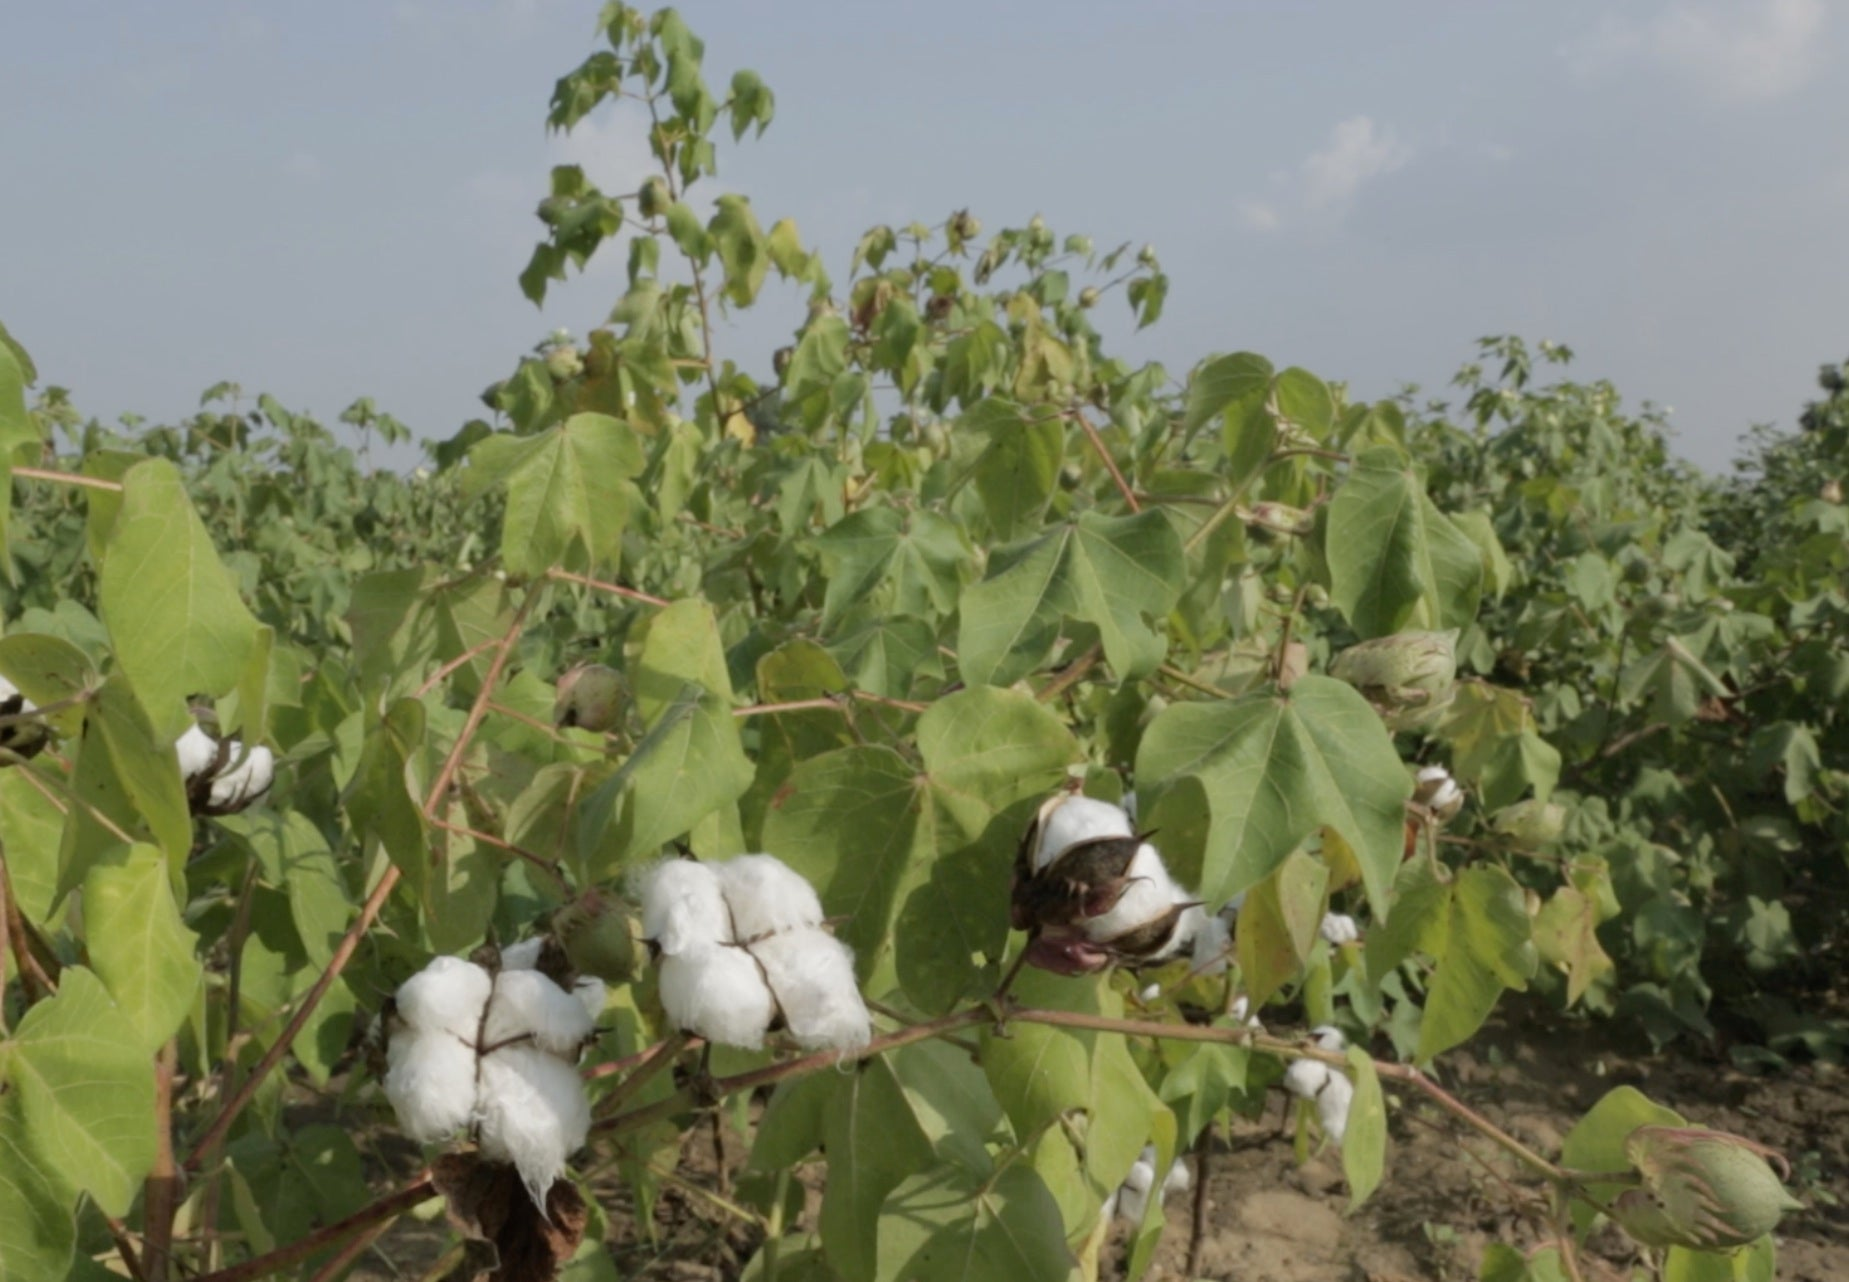 Cotton Fields near Samrathpura (Photo credit: Adrien Roche for Bloom & Give)